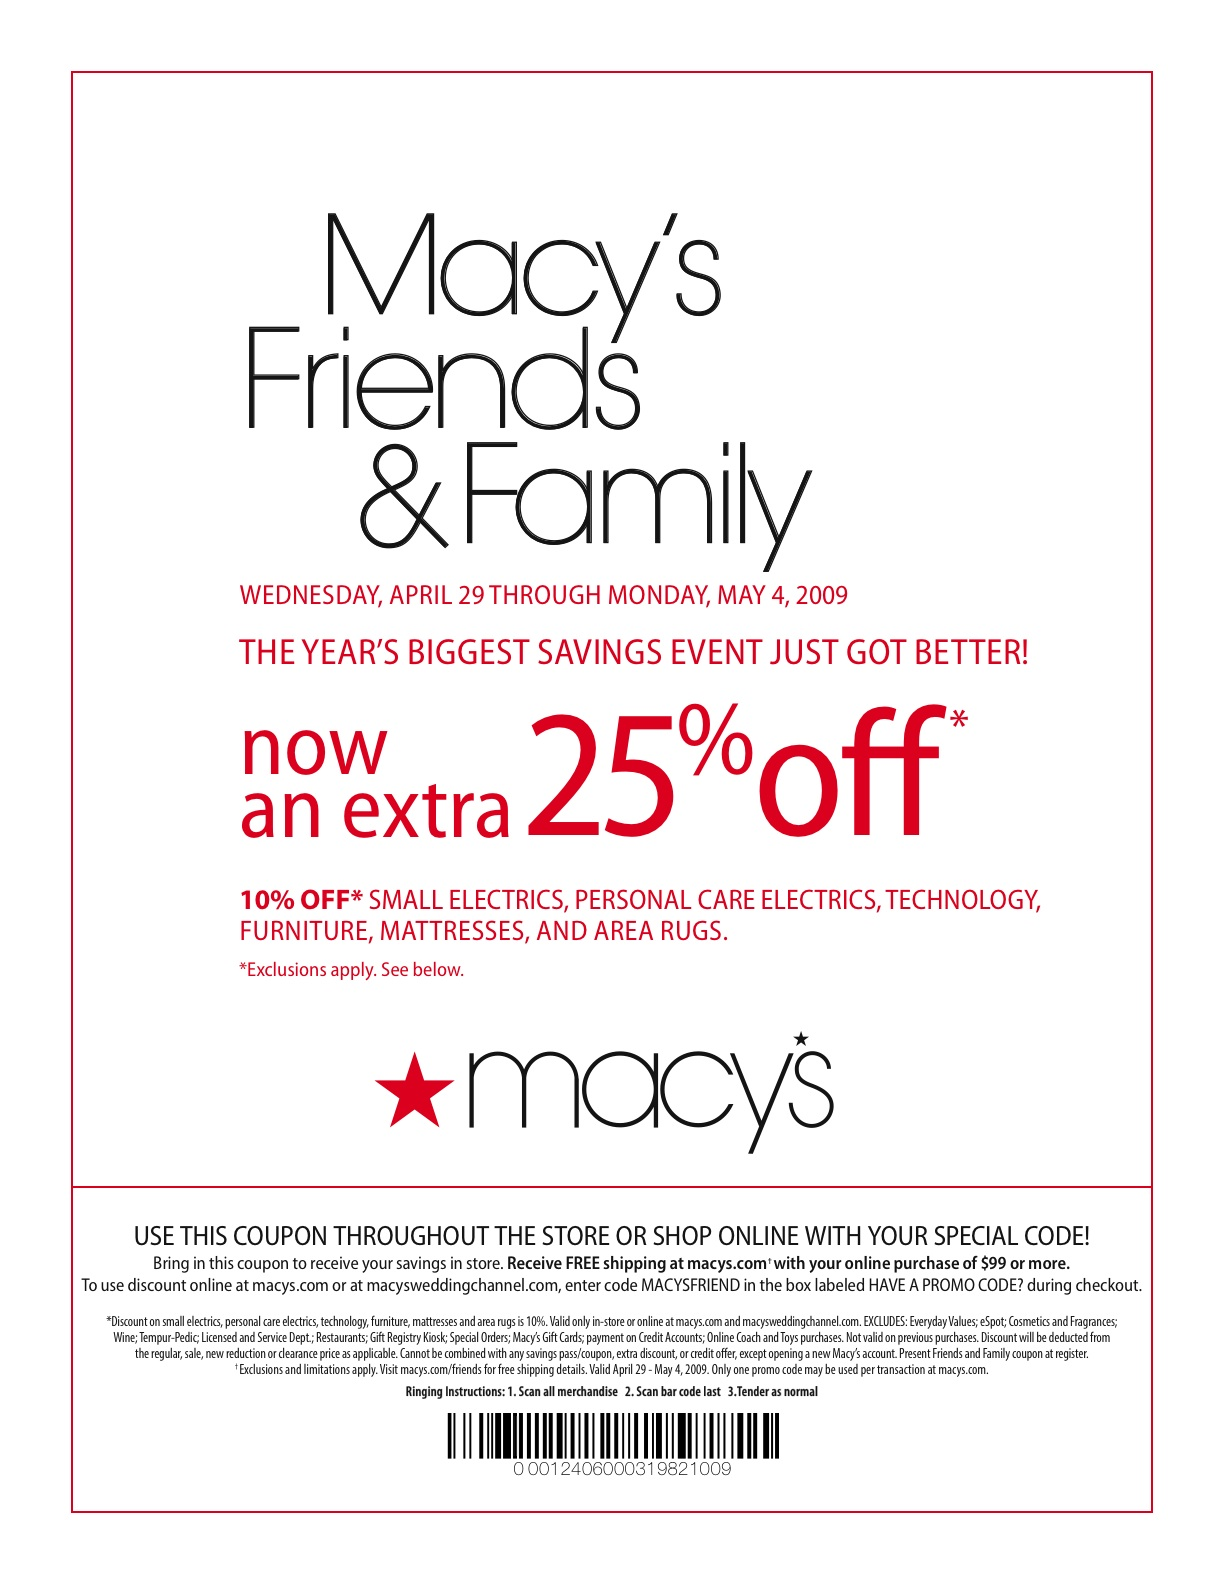 Macy's has Coach handbags, clothing, shoes, wallets, sunglasses, boots, pumps, flats, jewelry, accessories, and more for women and men. Shoppers can save an extra % off with an online Macy's coupon code at checkout. All deals ship free on orders of .